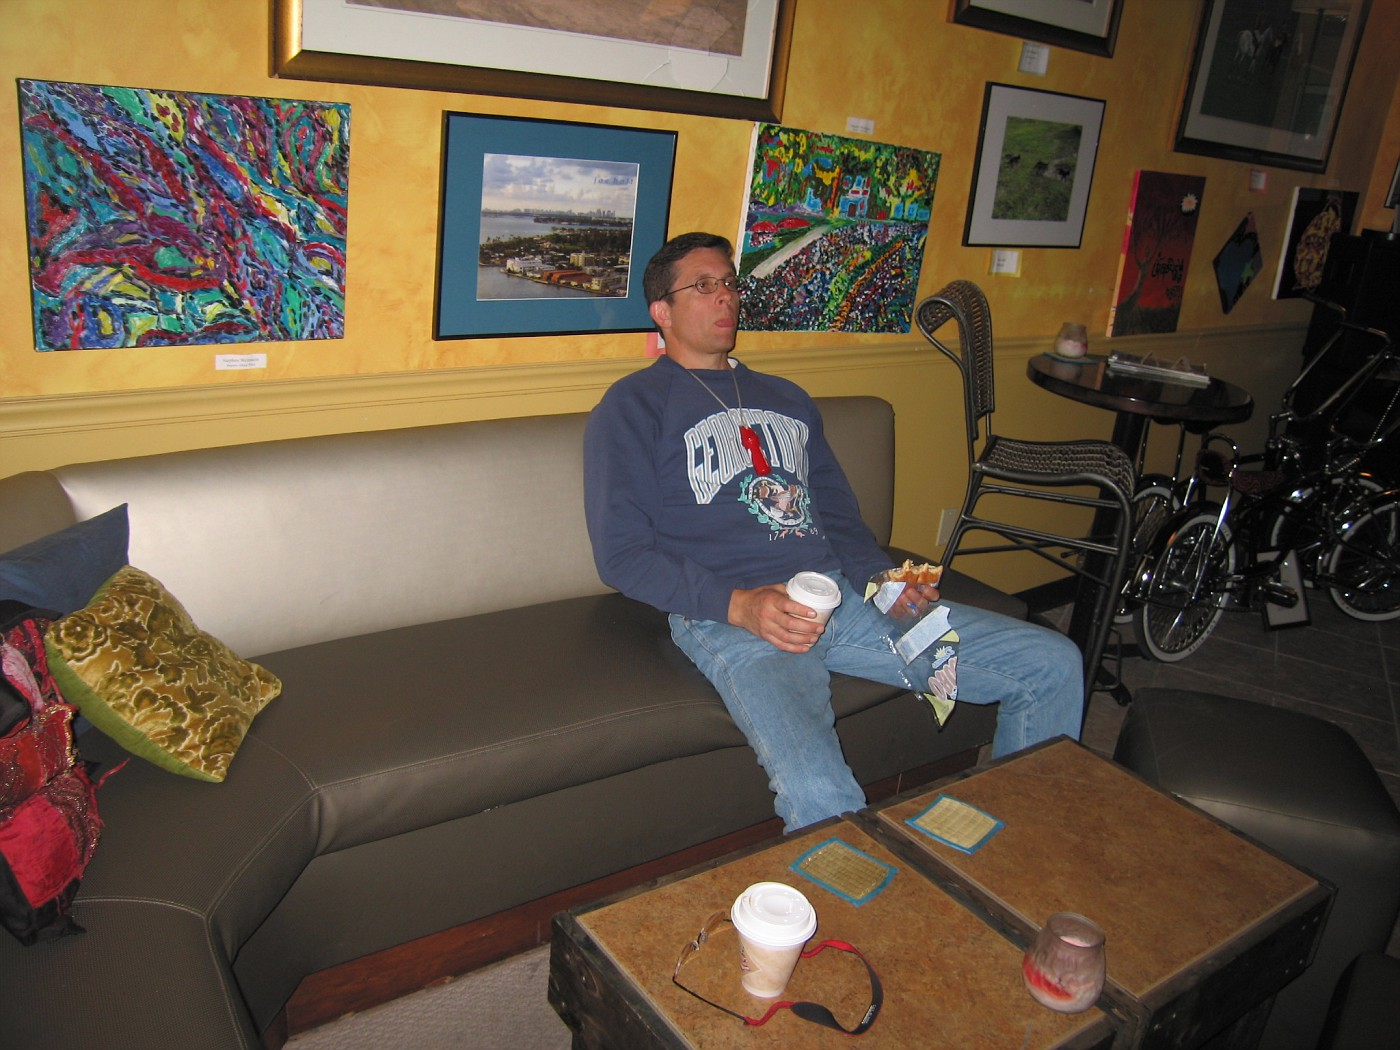 Steve waits patiently as I am checking my mail and Fotki from this internet cafe in downtown Ft  Lauderdale, Florida.